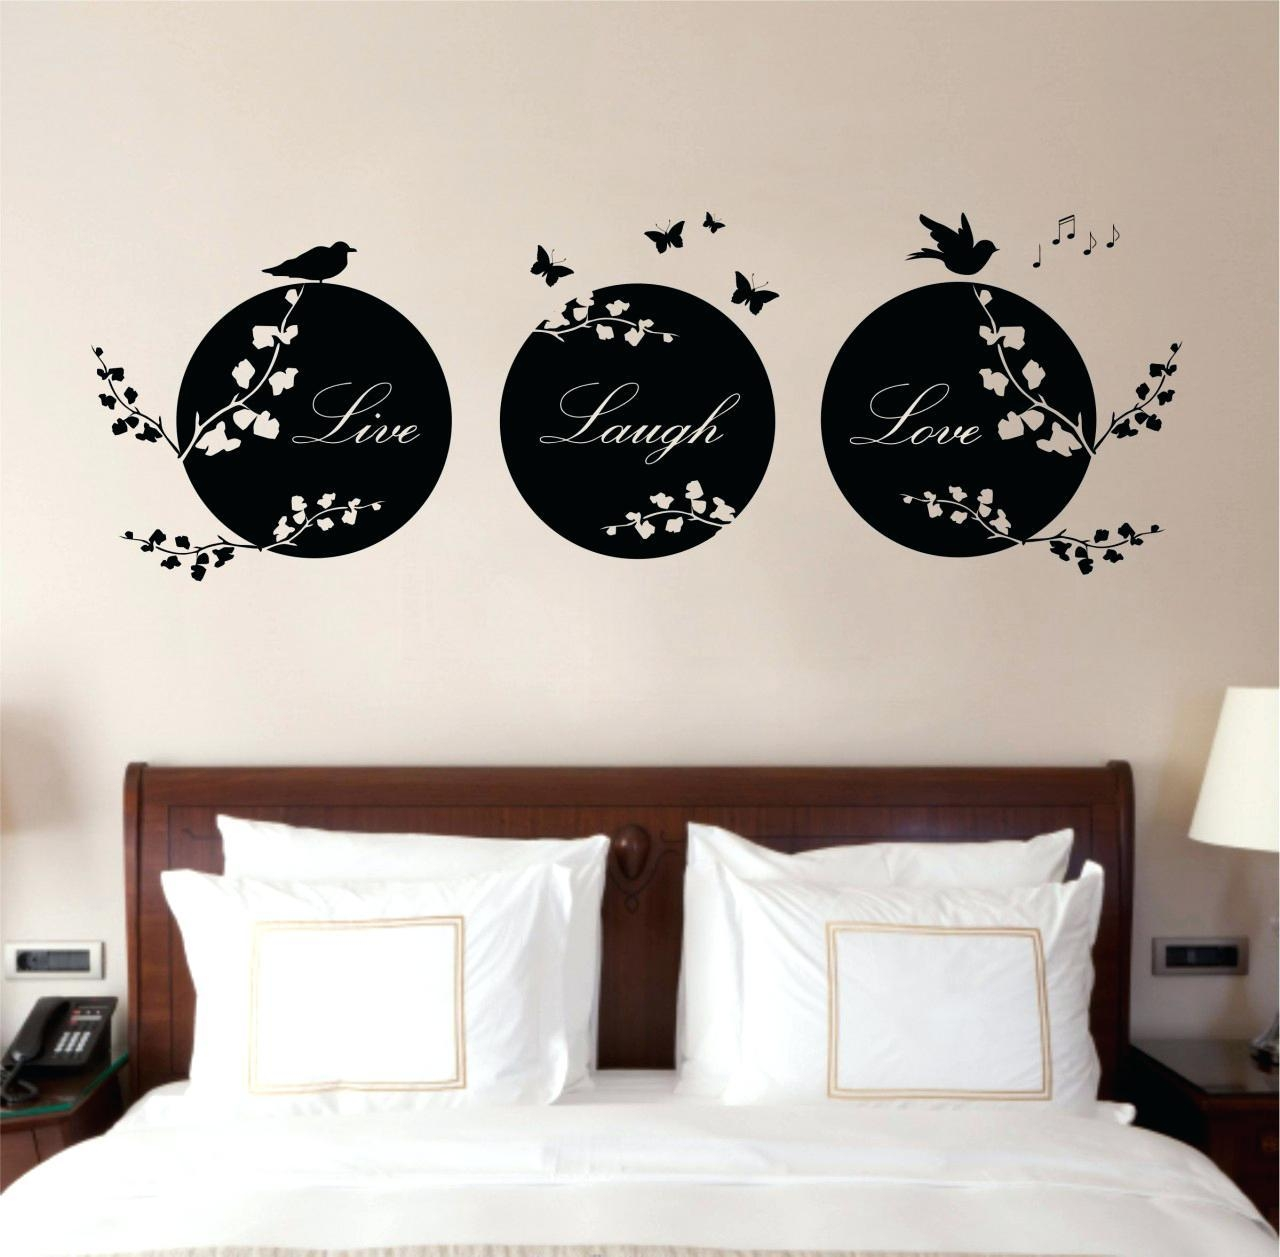 Wall Ideas : Vinyl Record Wall Art Ideas Vinyl Wall Art Throughout Vinyl Wall Art Tree (Image 18 of 20)